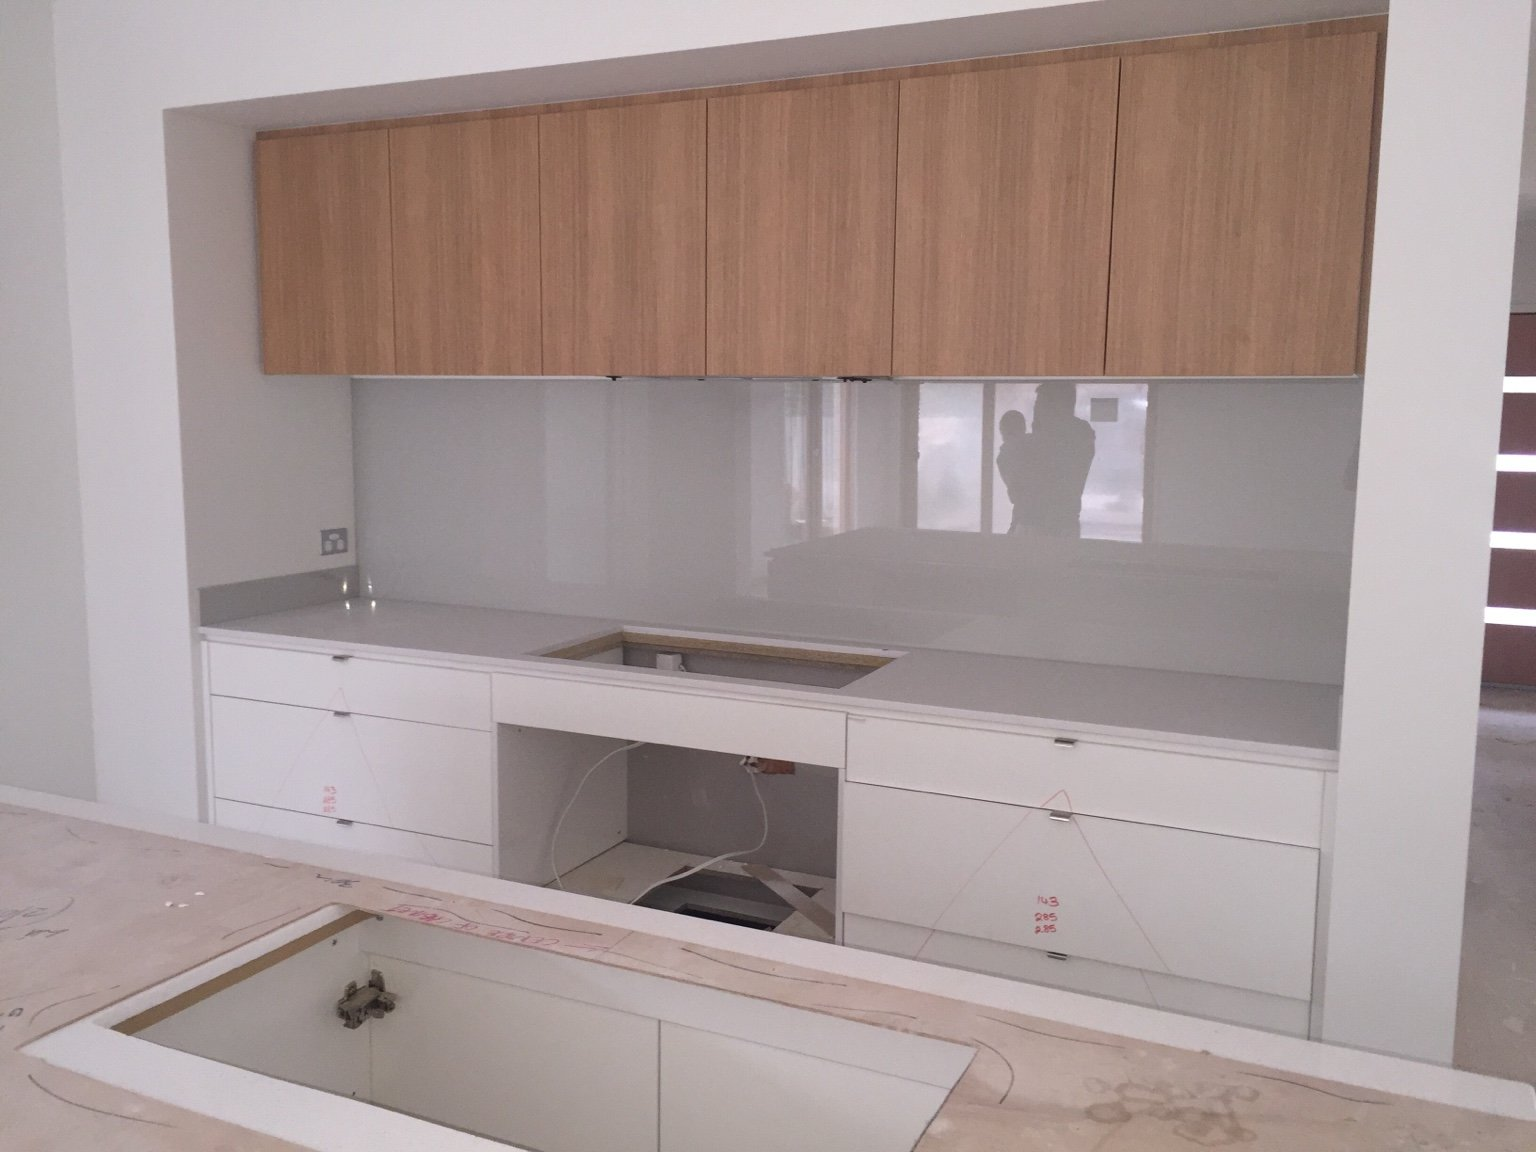 Our build- Henley, Monaco lux 2 in bayside Melbourne KDR